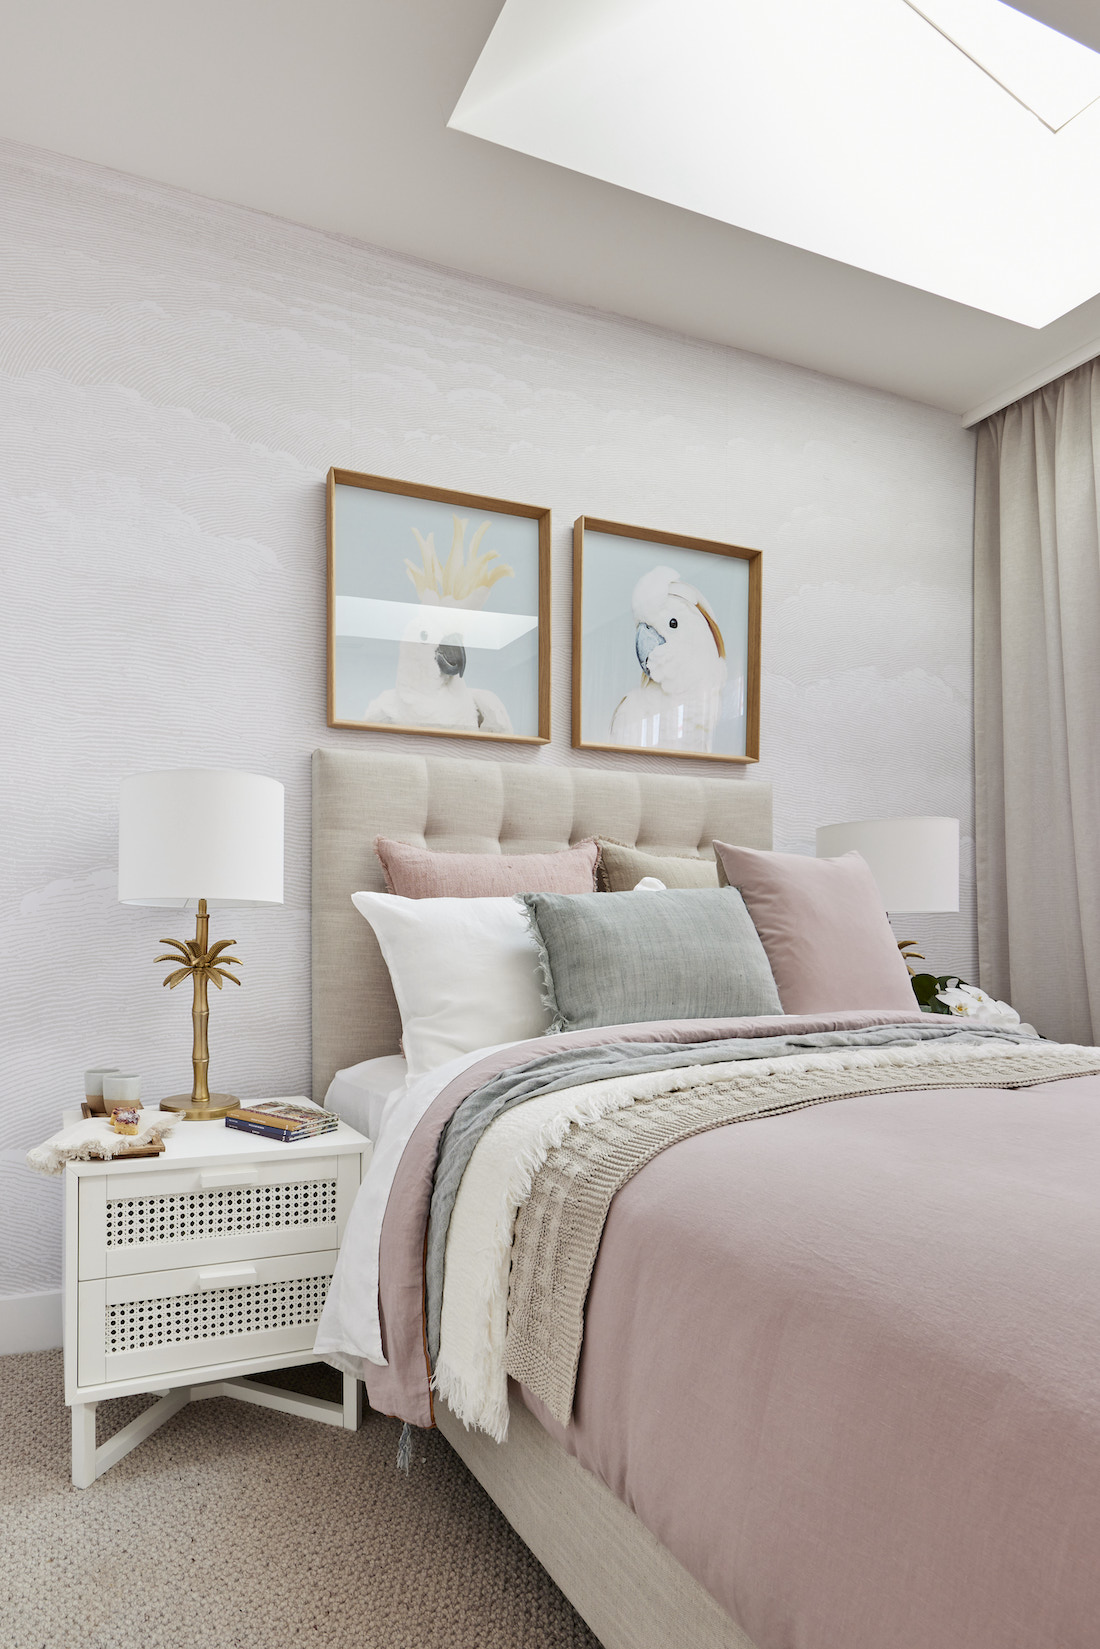 Guest bedroom in blush and sage tones